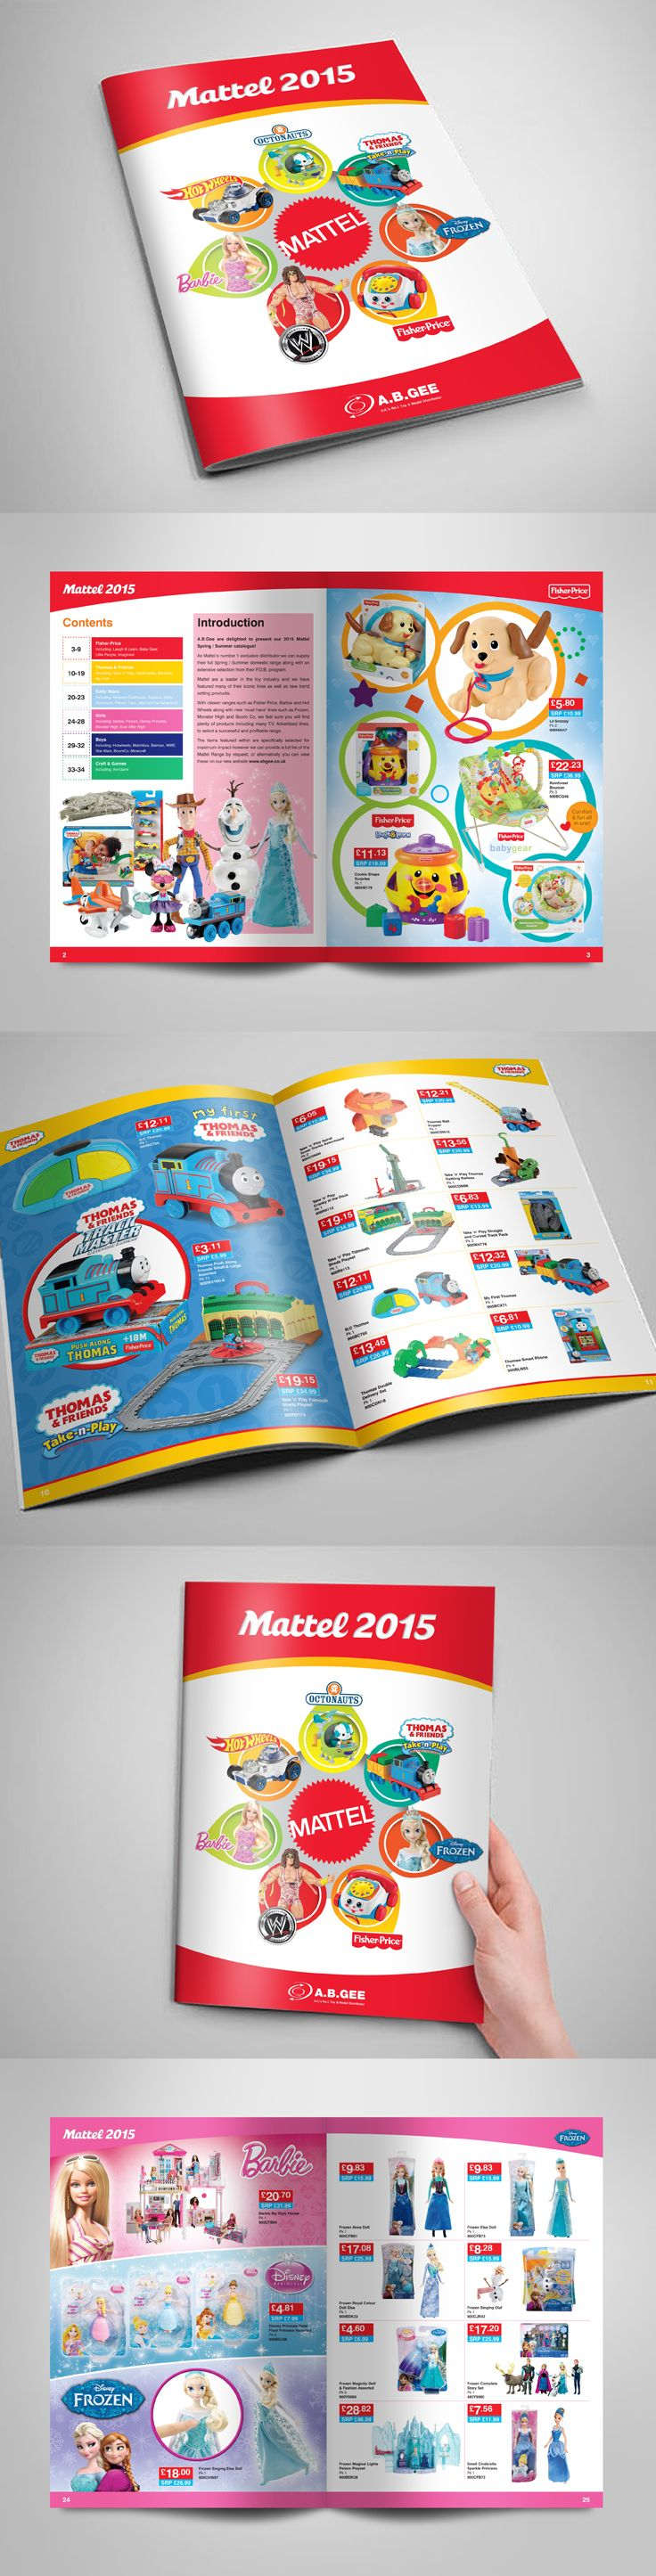 Toy catalogue specific to the Mattel brand, with feature pages for key ranges, such as Thomas the Tank Engine.